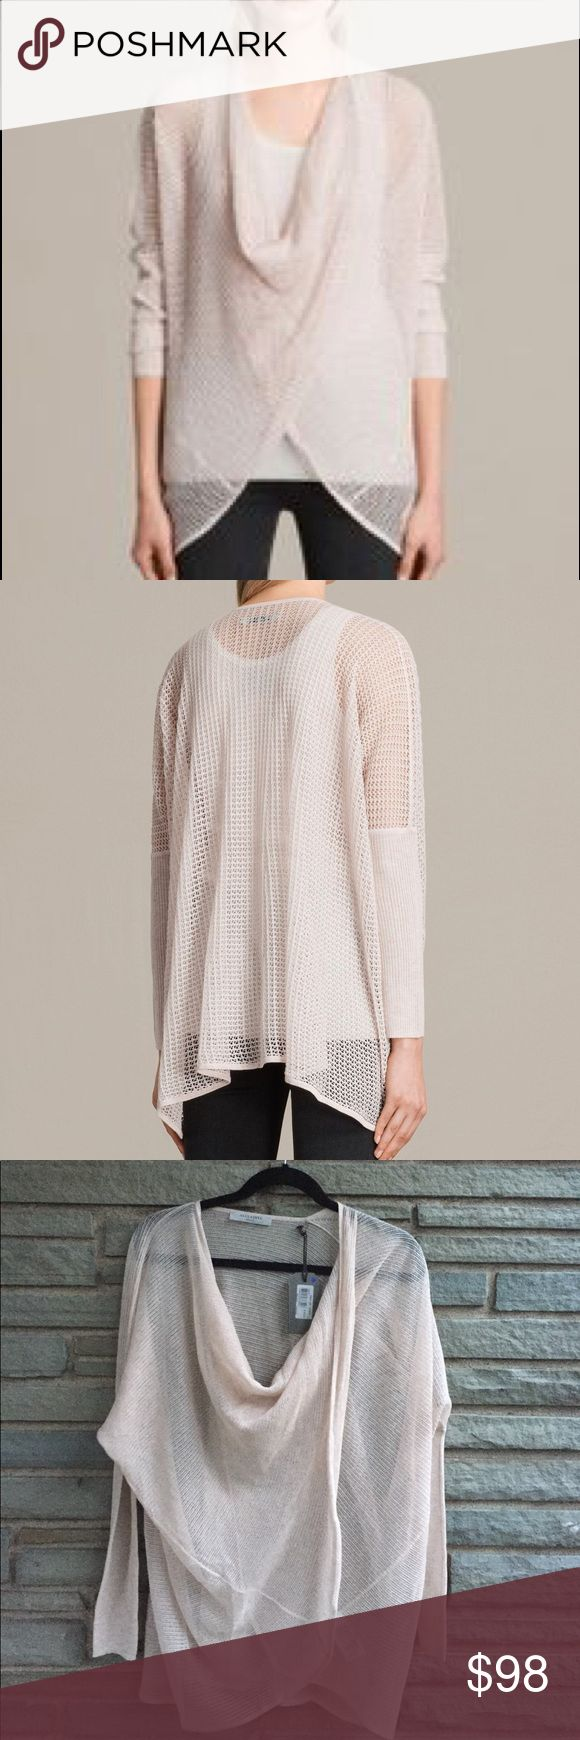 All Saints Itat Levita Shrug NWT. All Saints Itat Levita Shrug in Pink. Draped Twisted Cowl Neckline or Open Front, Ling Batwing Sleeves, Slim Ribbed Cuffs, Sheer, Lightweight. Transforms Effortlessly From a Jumper with a Twisted Front to an Open Cardigan. Size S All Saints Sweaters